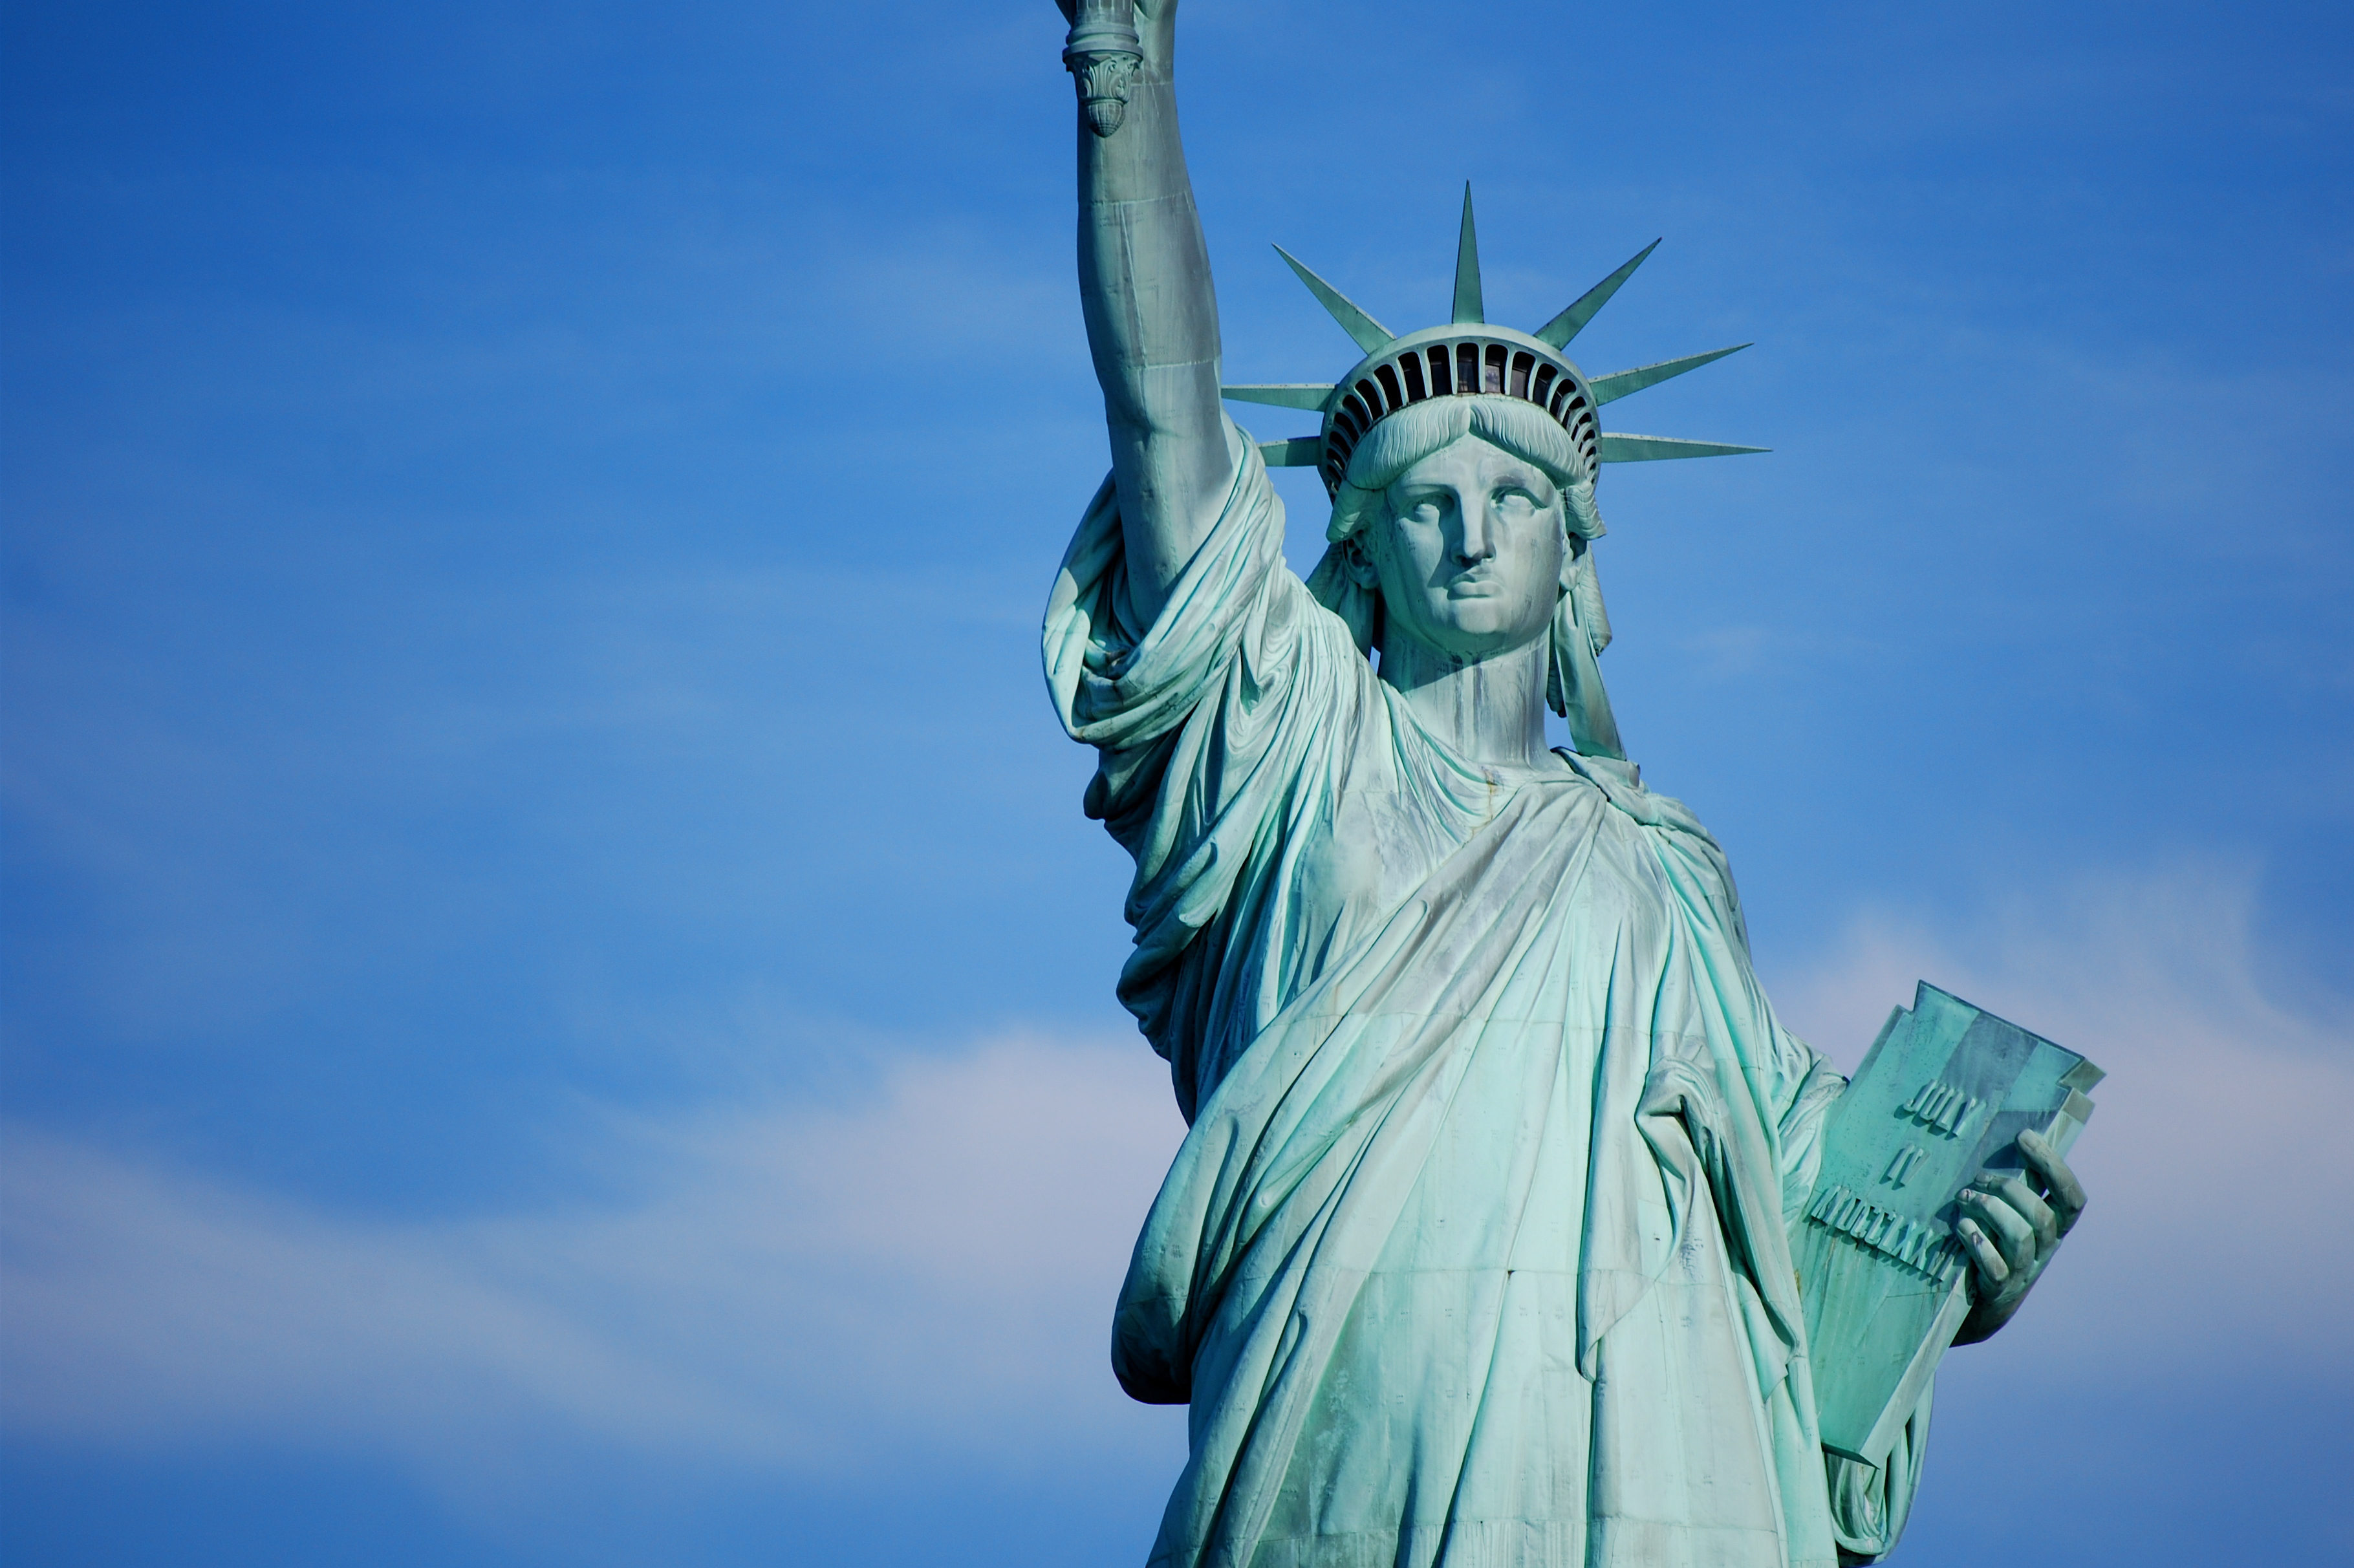 USPS Printed The Wrong Statue Of Liberty On 4 Billion Stamps And Artist Sued